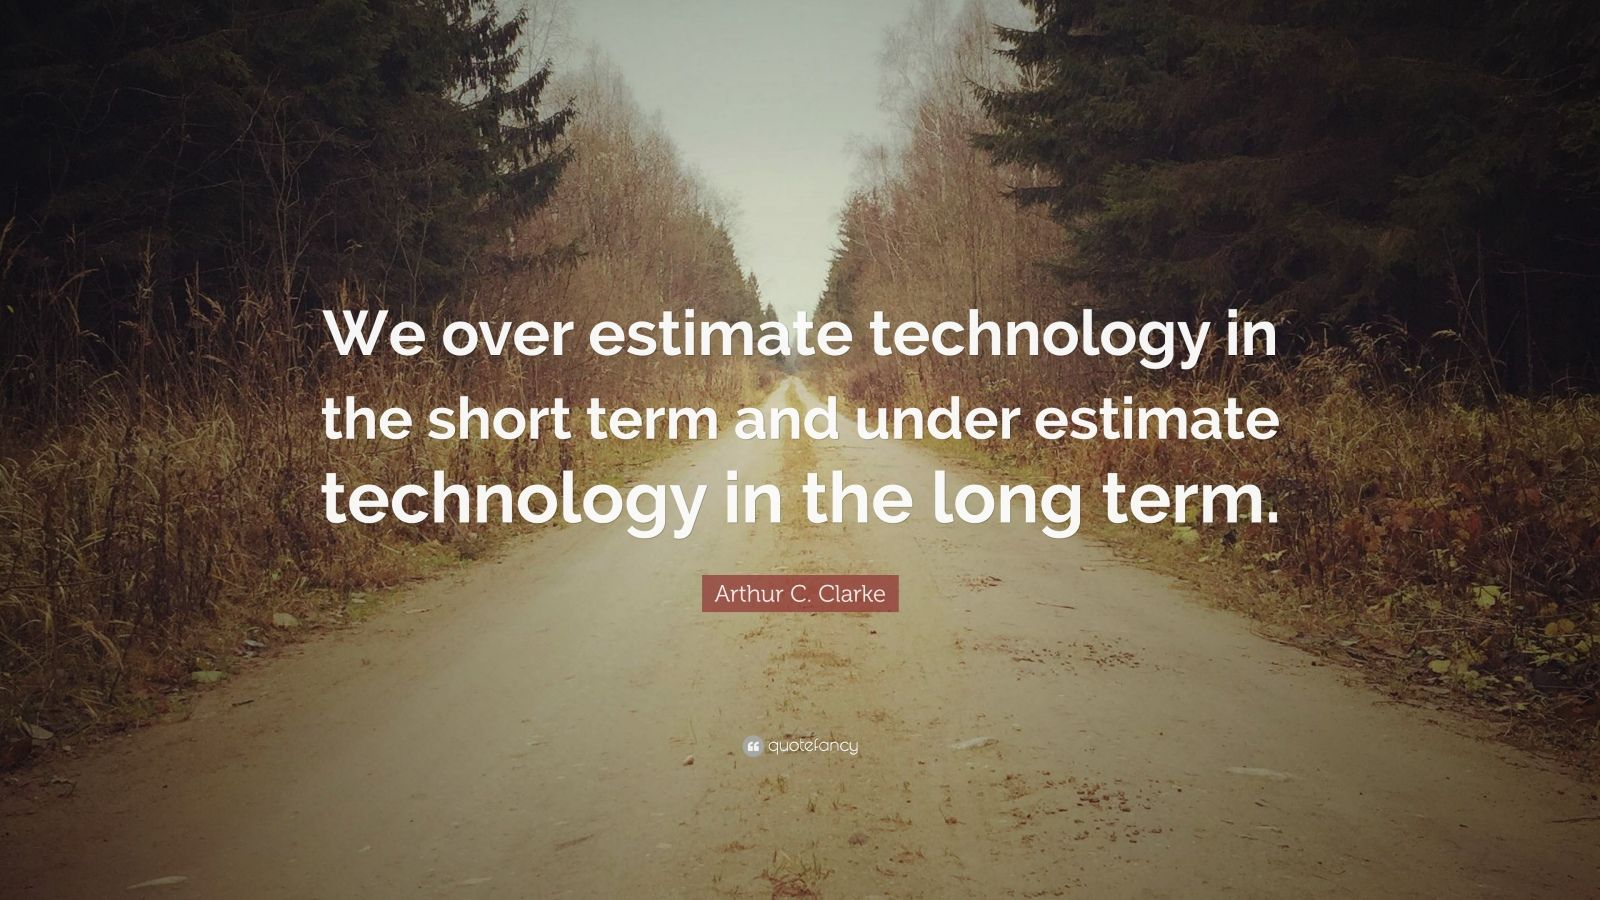 """Arthur C. Clarke Quote: """"We over estimate technology in the short term and under estimate technology in the long term."""""""